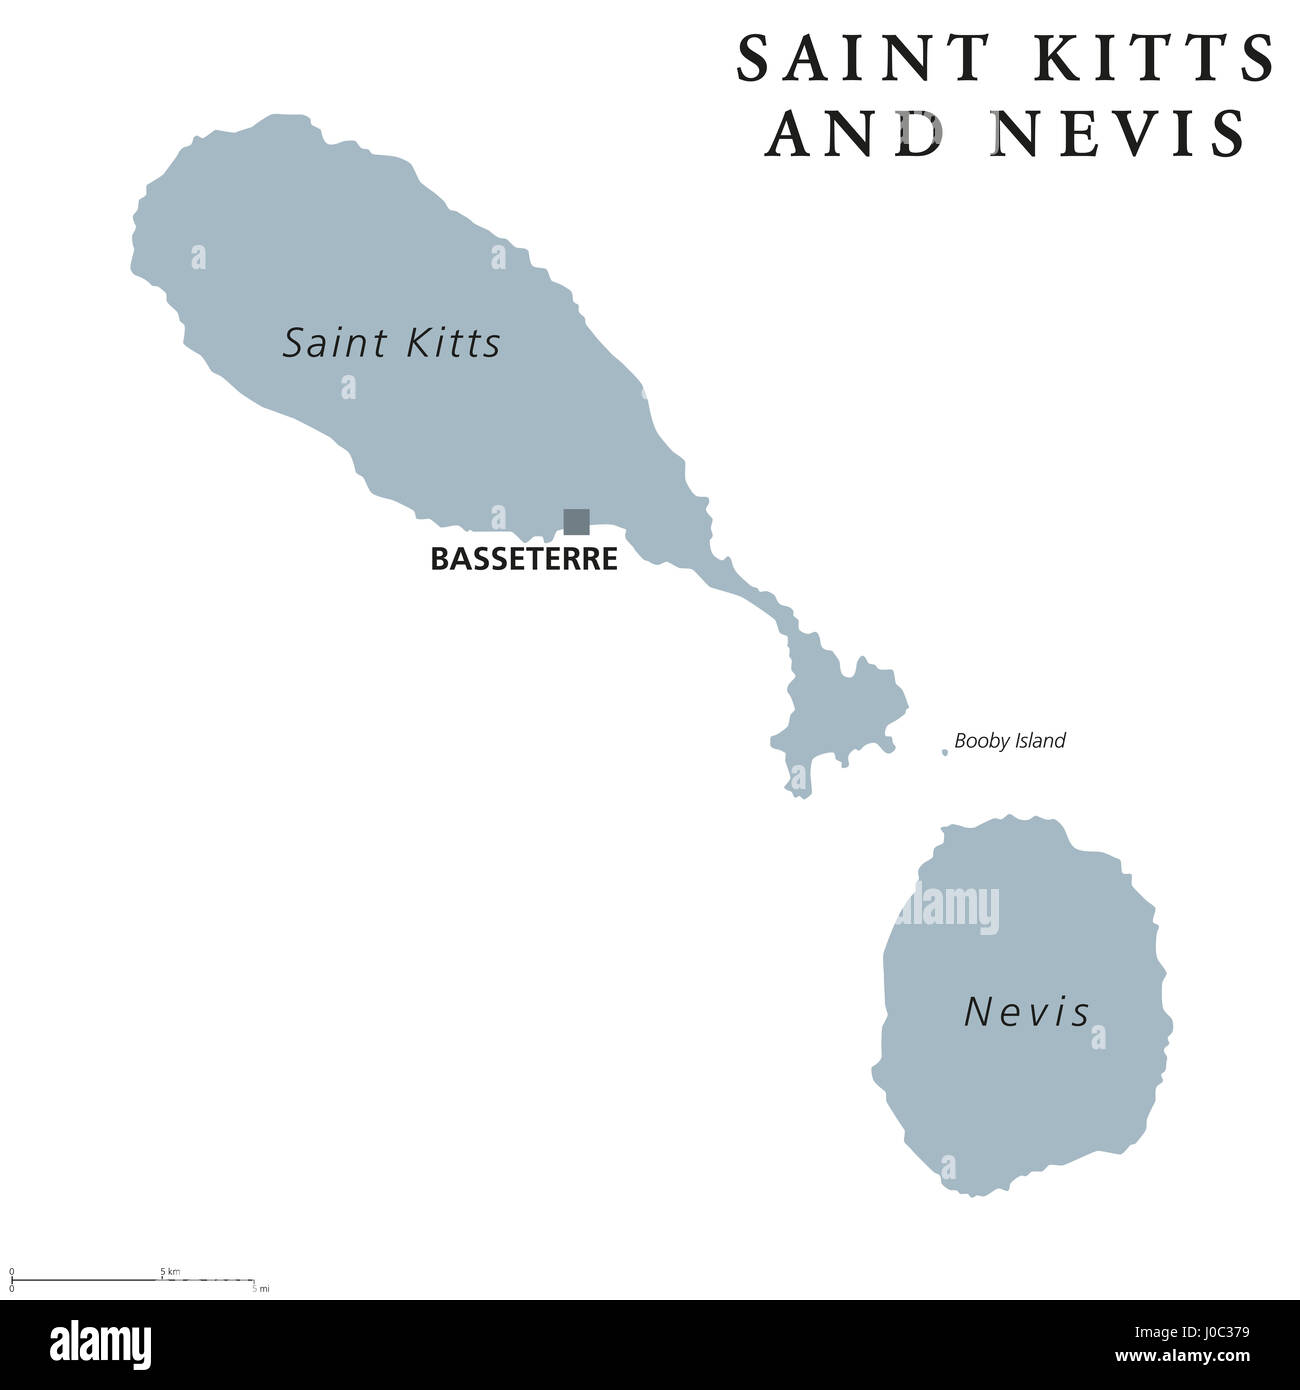 Saint Kitts and Nevis political map with capital Beterre ... on ukraine map, senegal map, albania map, montenegro map, redonda map, slovenia map, anglosphere map, svalbard and jan mayen map, caribbean map, yisrael map, monaco map, tokelau map, timor-leste map, lesotho map, virgin islands map, nevis island map, south georgia and the south sandwich islands map, serbia map, nevis on world map, singapore map,